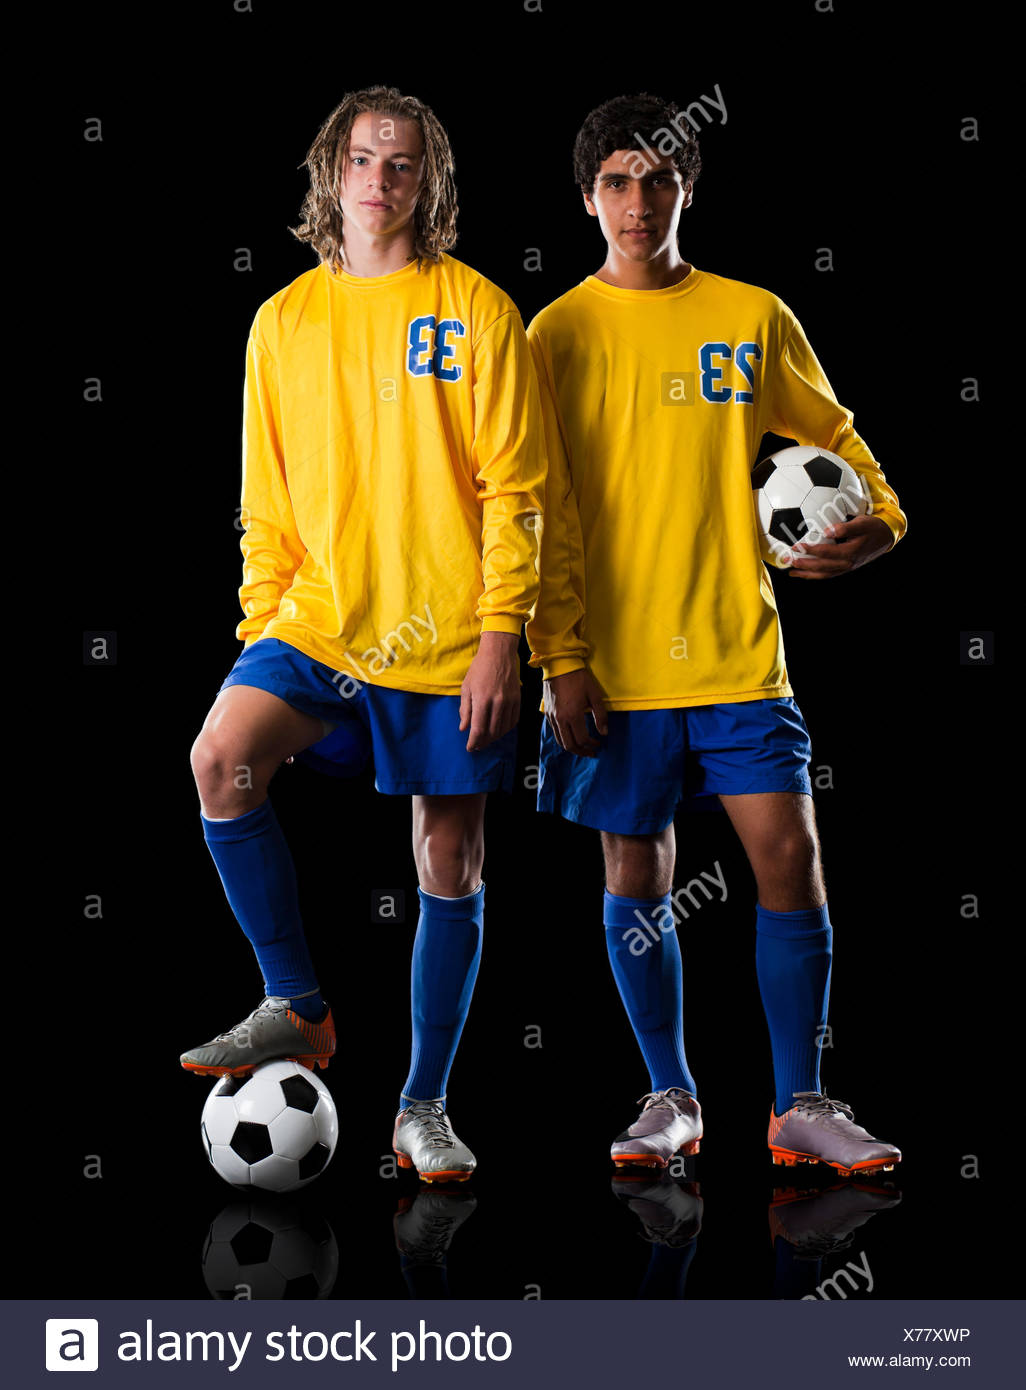 Soccer Players - Stock Image